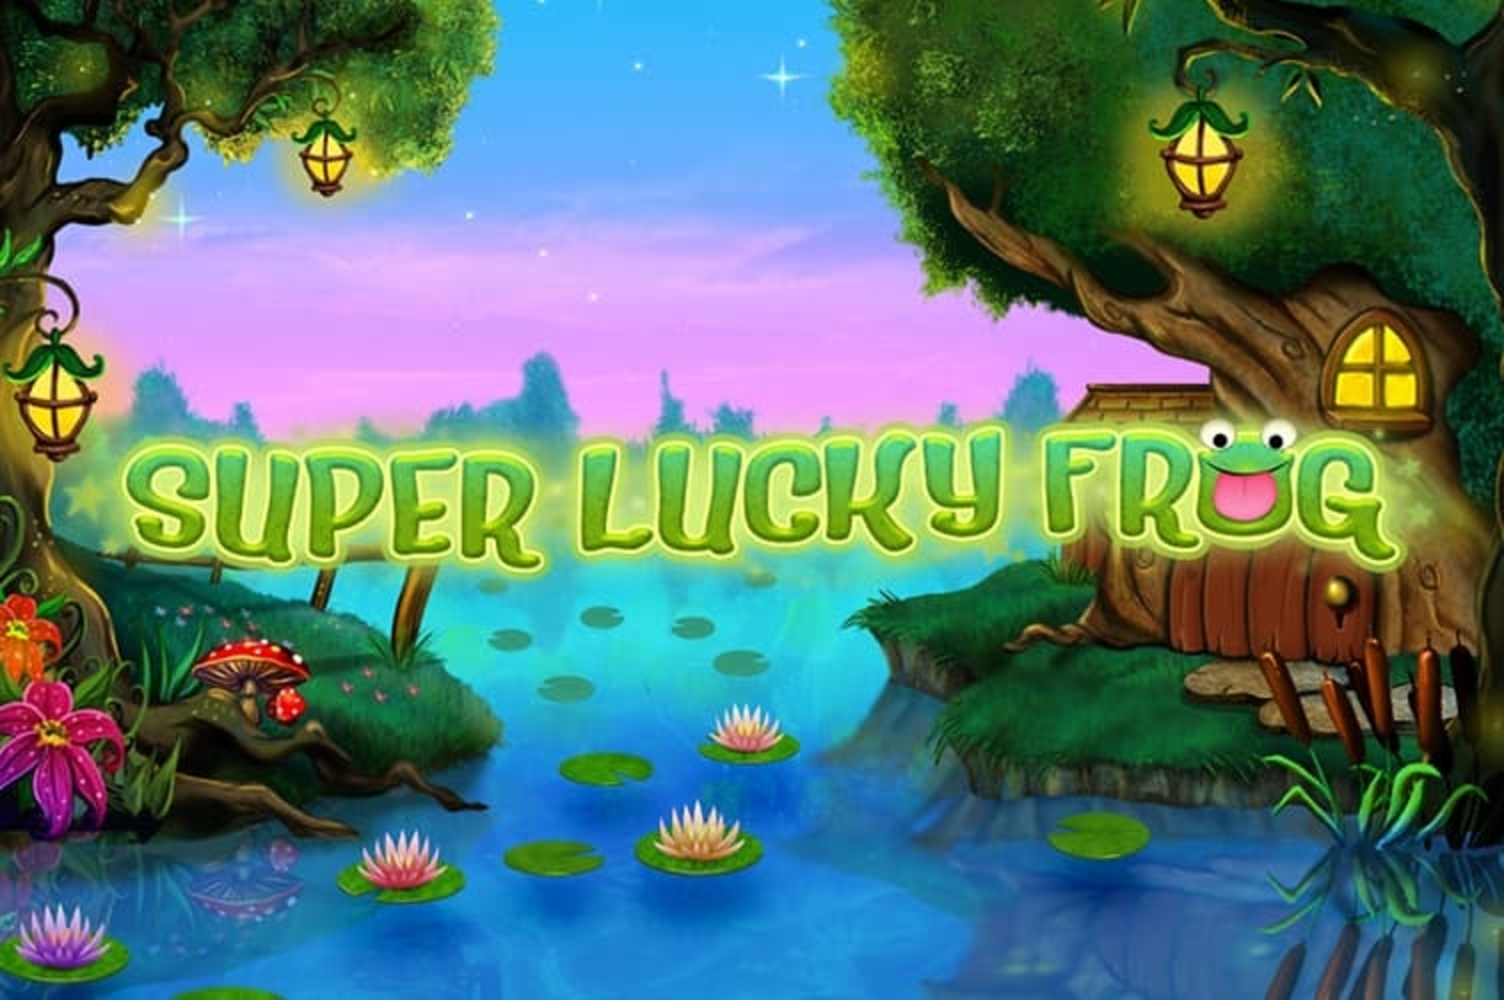 Super Lucky Frog (NetEnt) Online Slot Demo Game by NetEnt